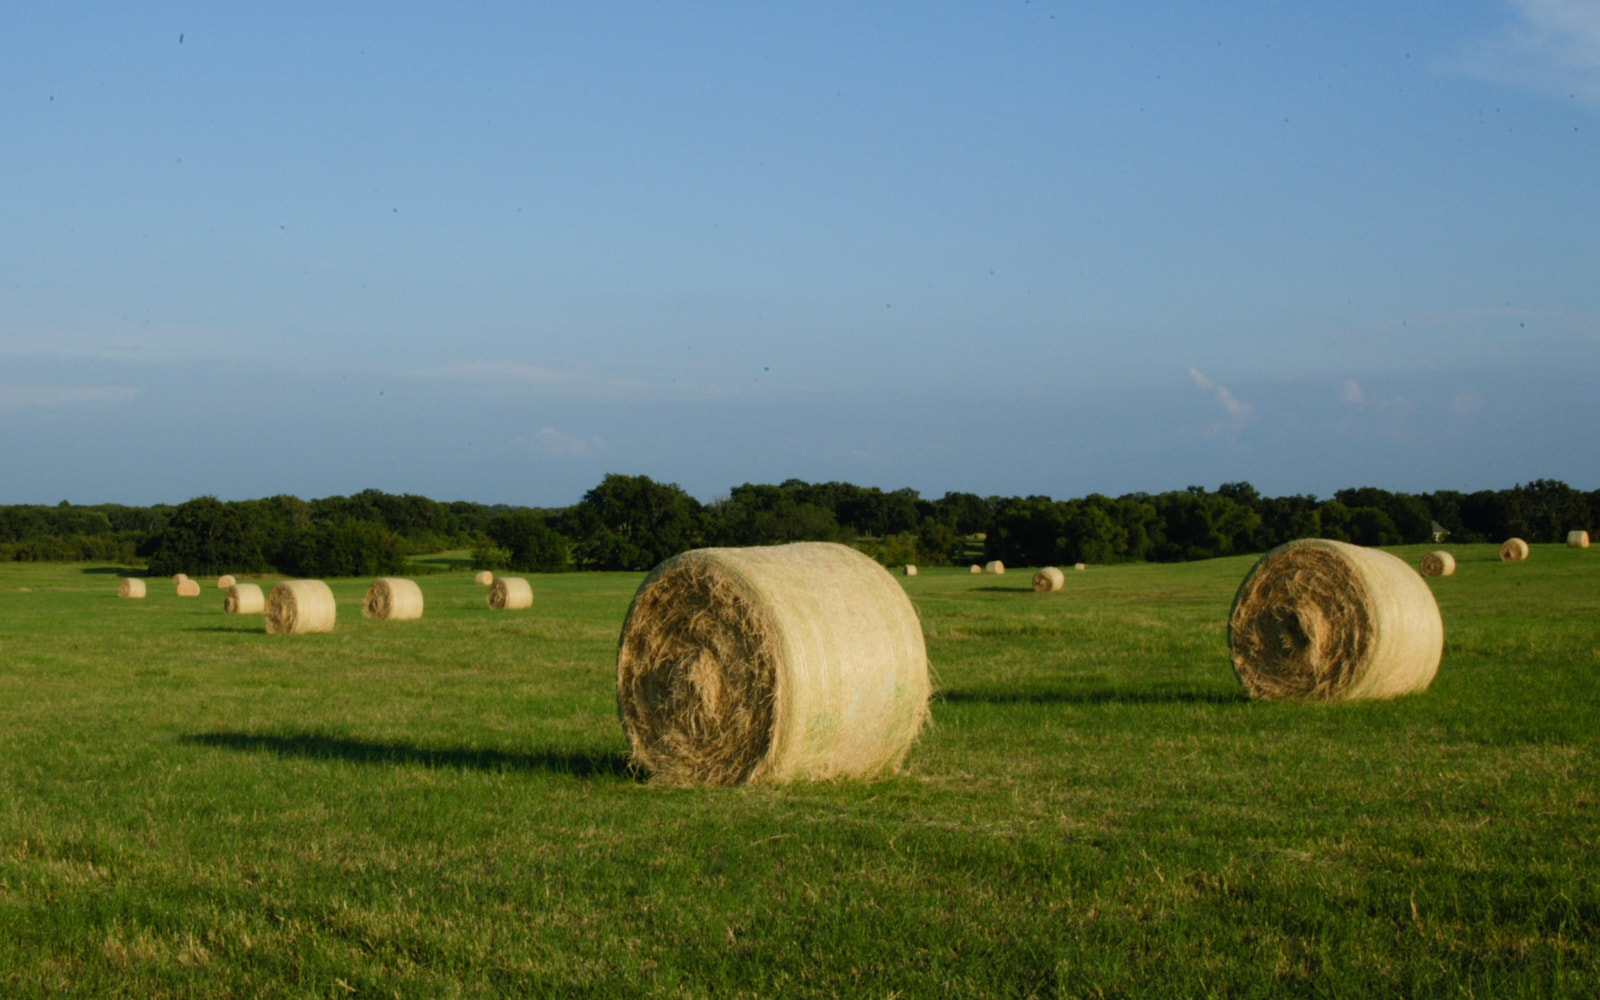 Hay bales in an East Texas landscape